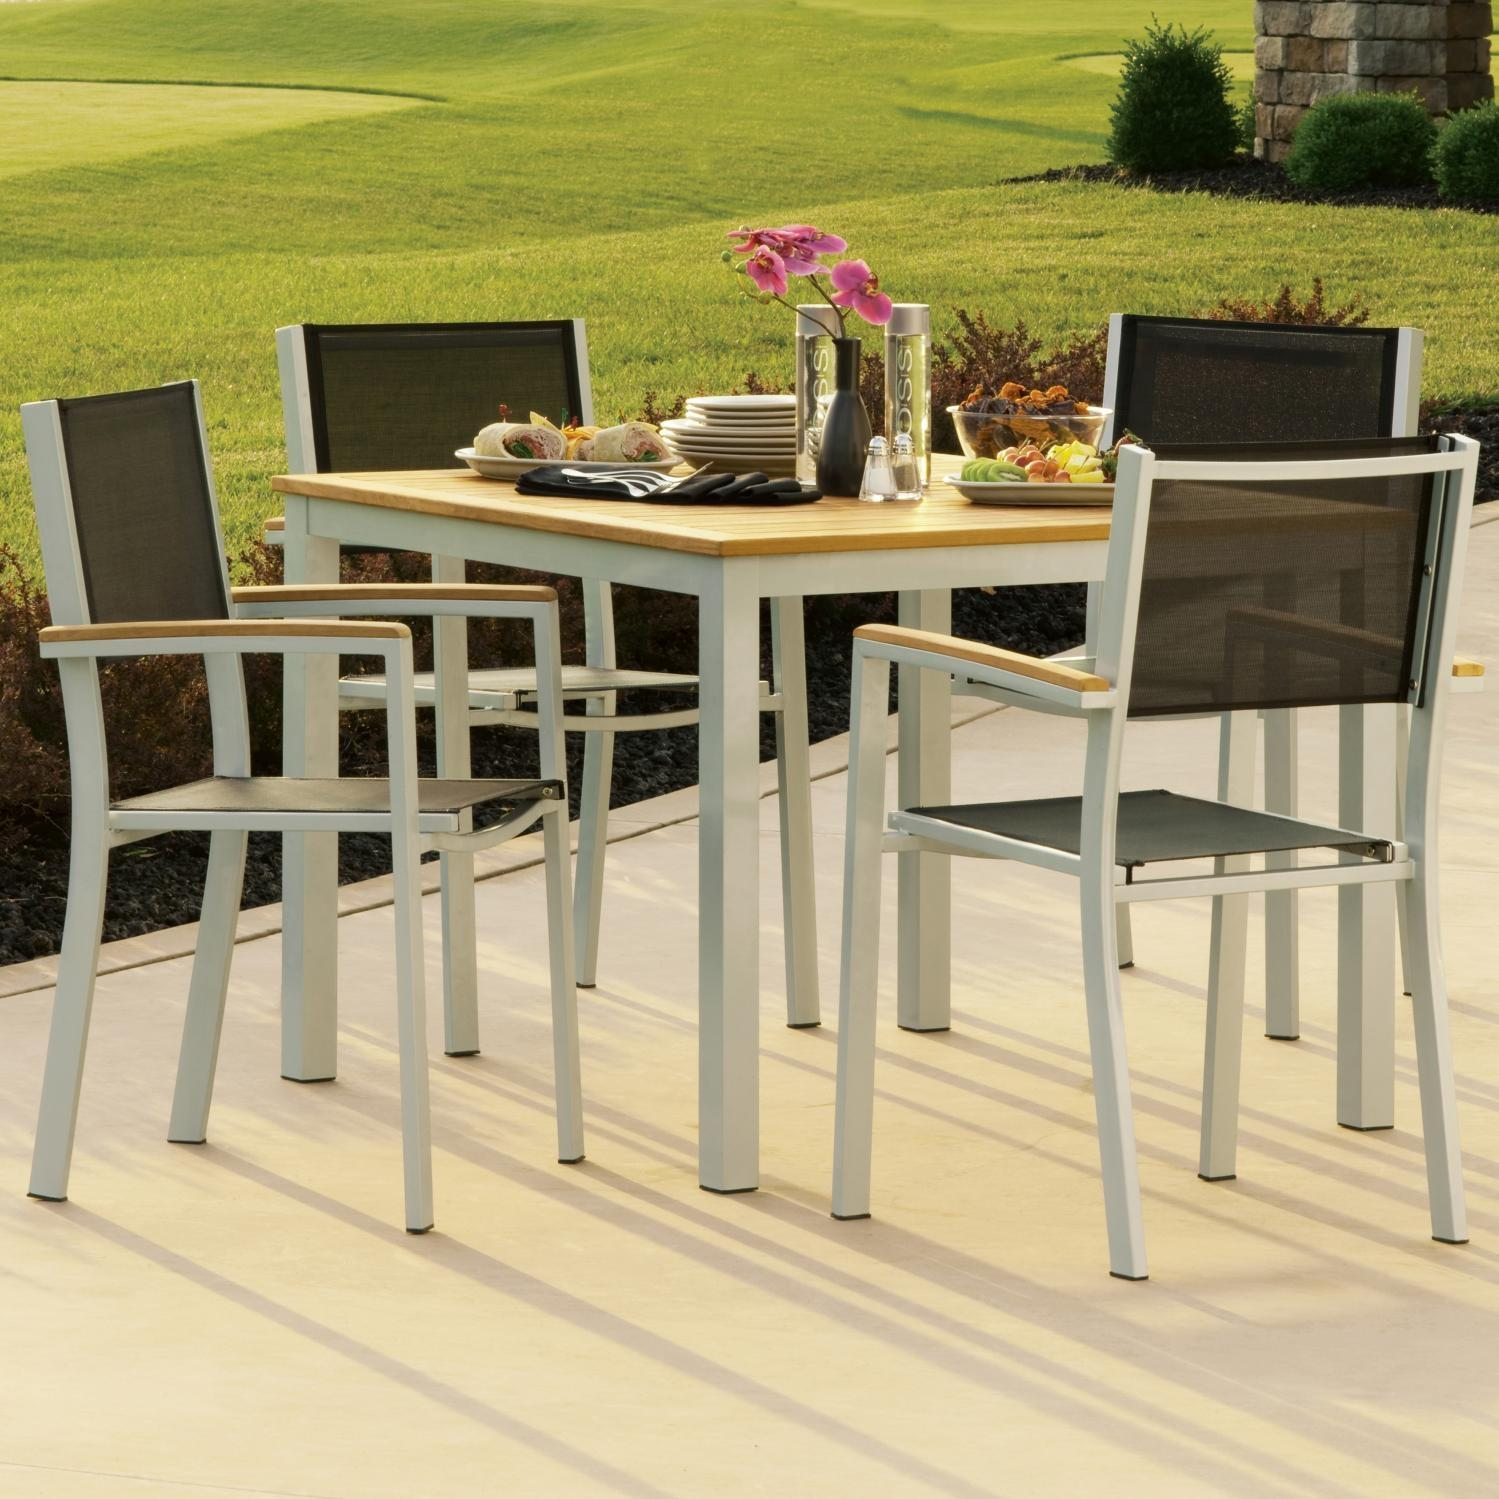 Discount Patio Dining Sets